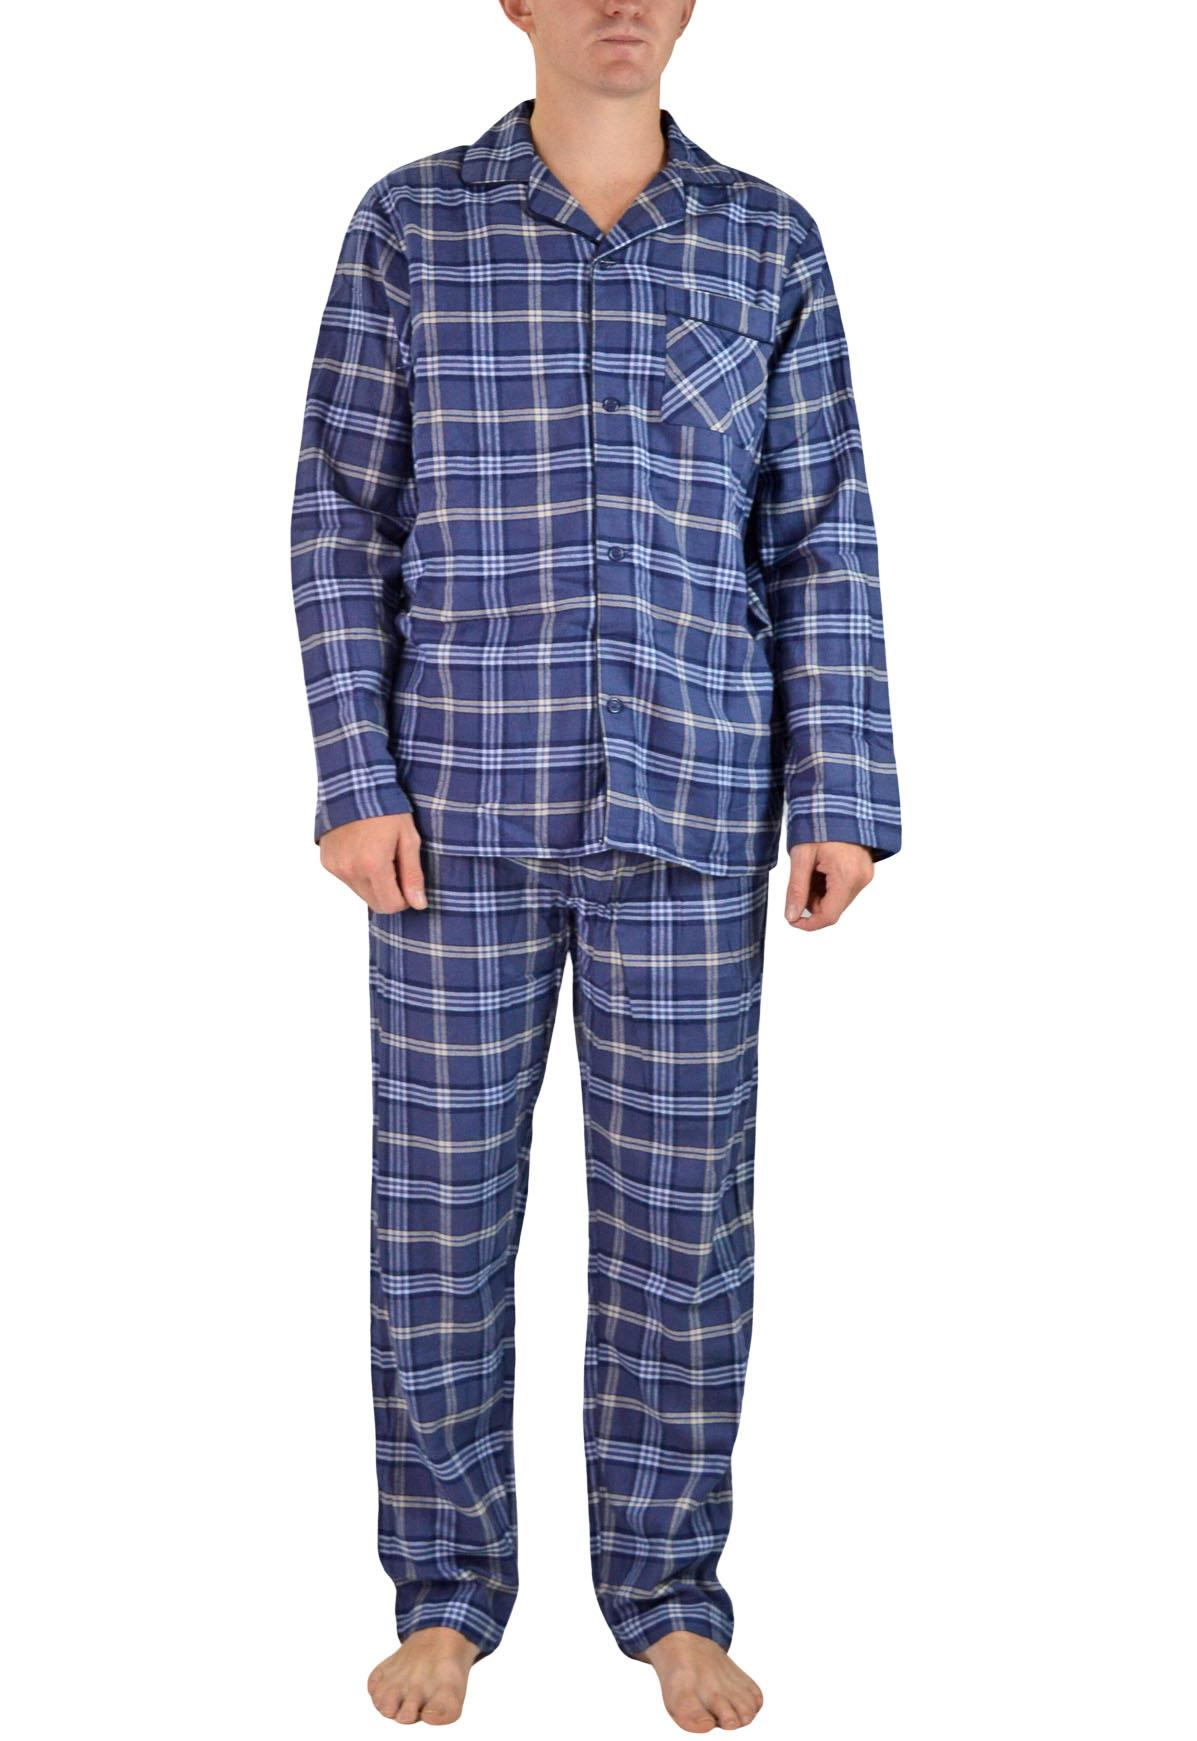 NEW-Mens-Brushed-Pure-Cotton-Check-Pyjamas-Flannelette-PJ-Set-in-Blue-Red-Grey thumbnail 4